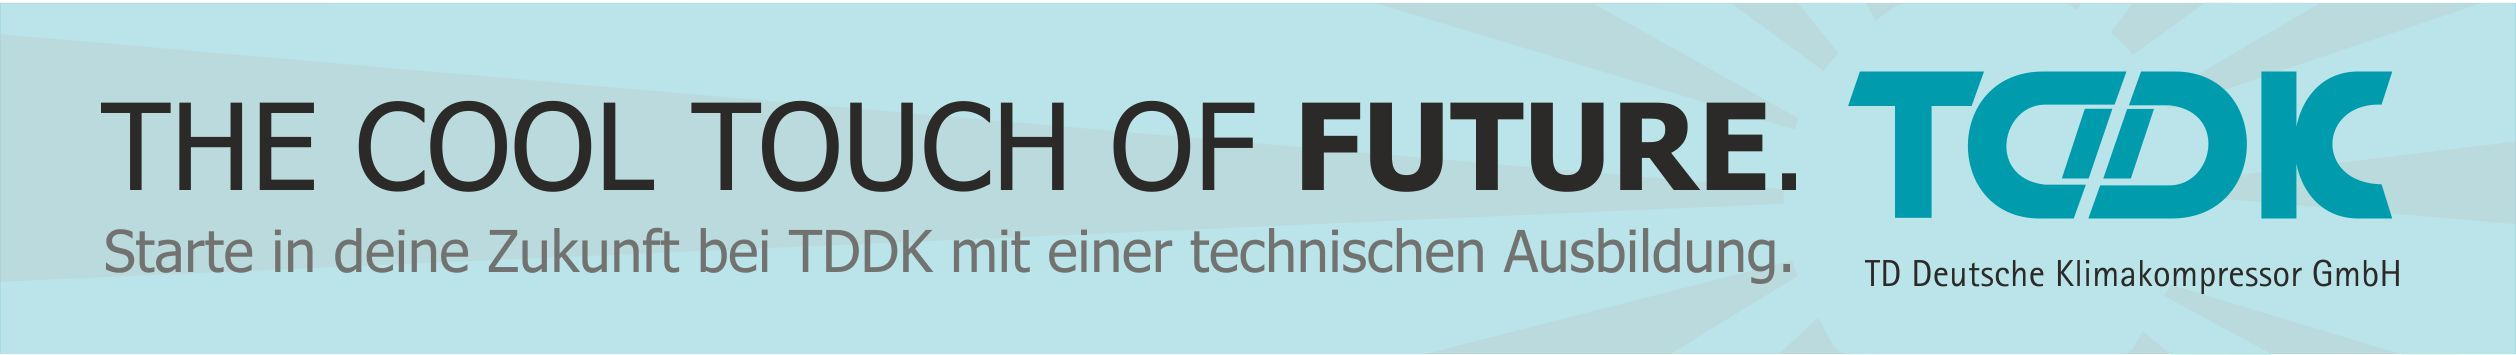 TDDK - Studium & Ausbildung - The cool touch of future.